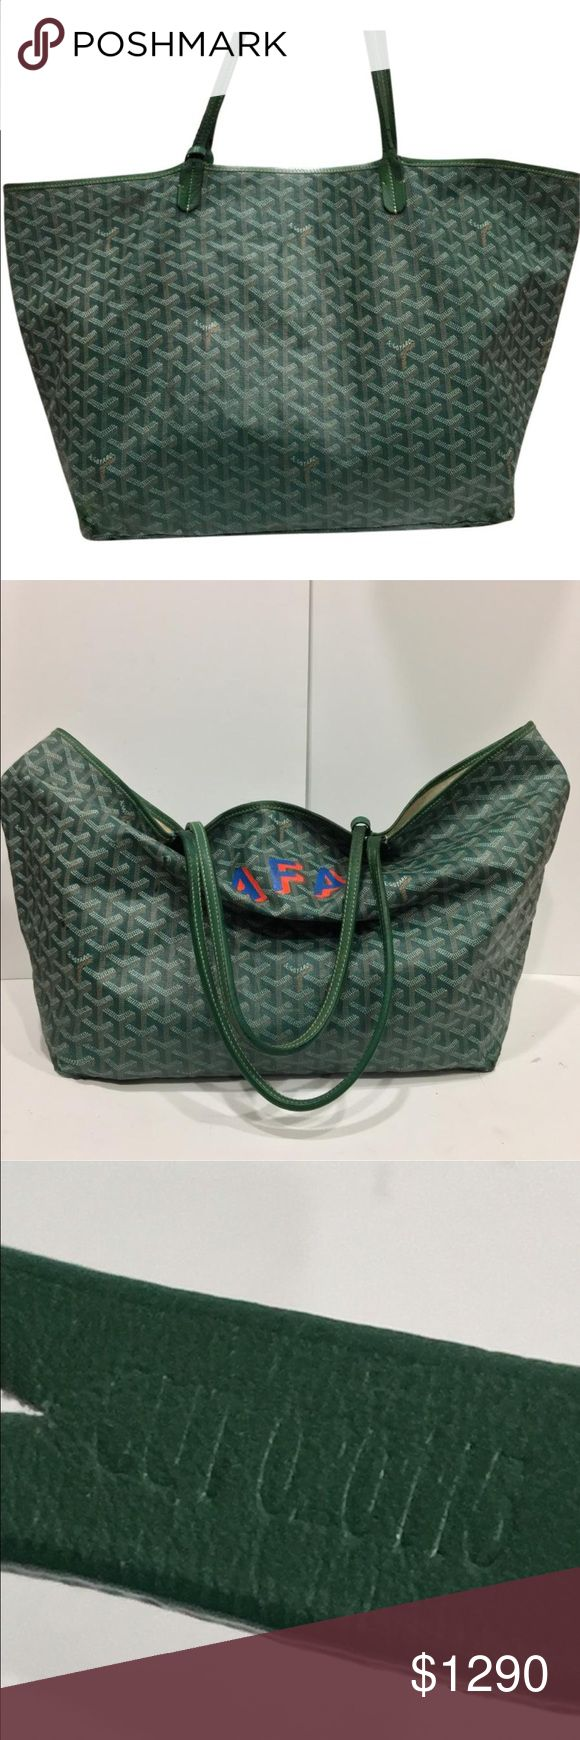 Goyard - authentic Goyard Large tote bag Freshly touched up hand painted details have been restored to as new by a local artist with a bachelors degree in fine arts from MICA for a limited time this can be painted professionally to anything you may like. Hand painted designs will take a few days longer if requested. Bag will arrive signed w/certification of the artist. 3400-5000 retail if painted for less than half that price for posters. Choose your image or enjoy the AFA monogram. Painting…